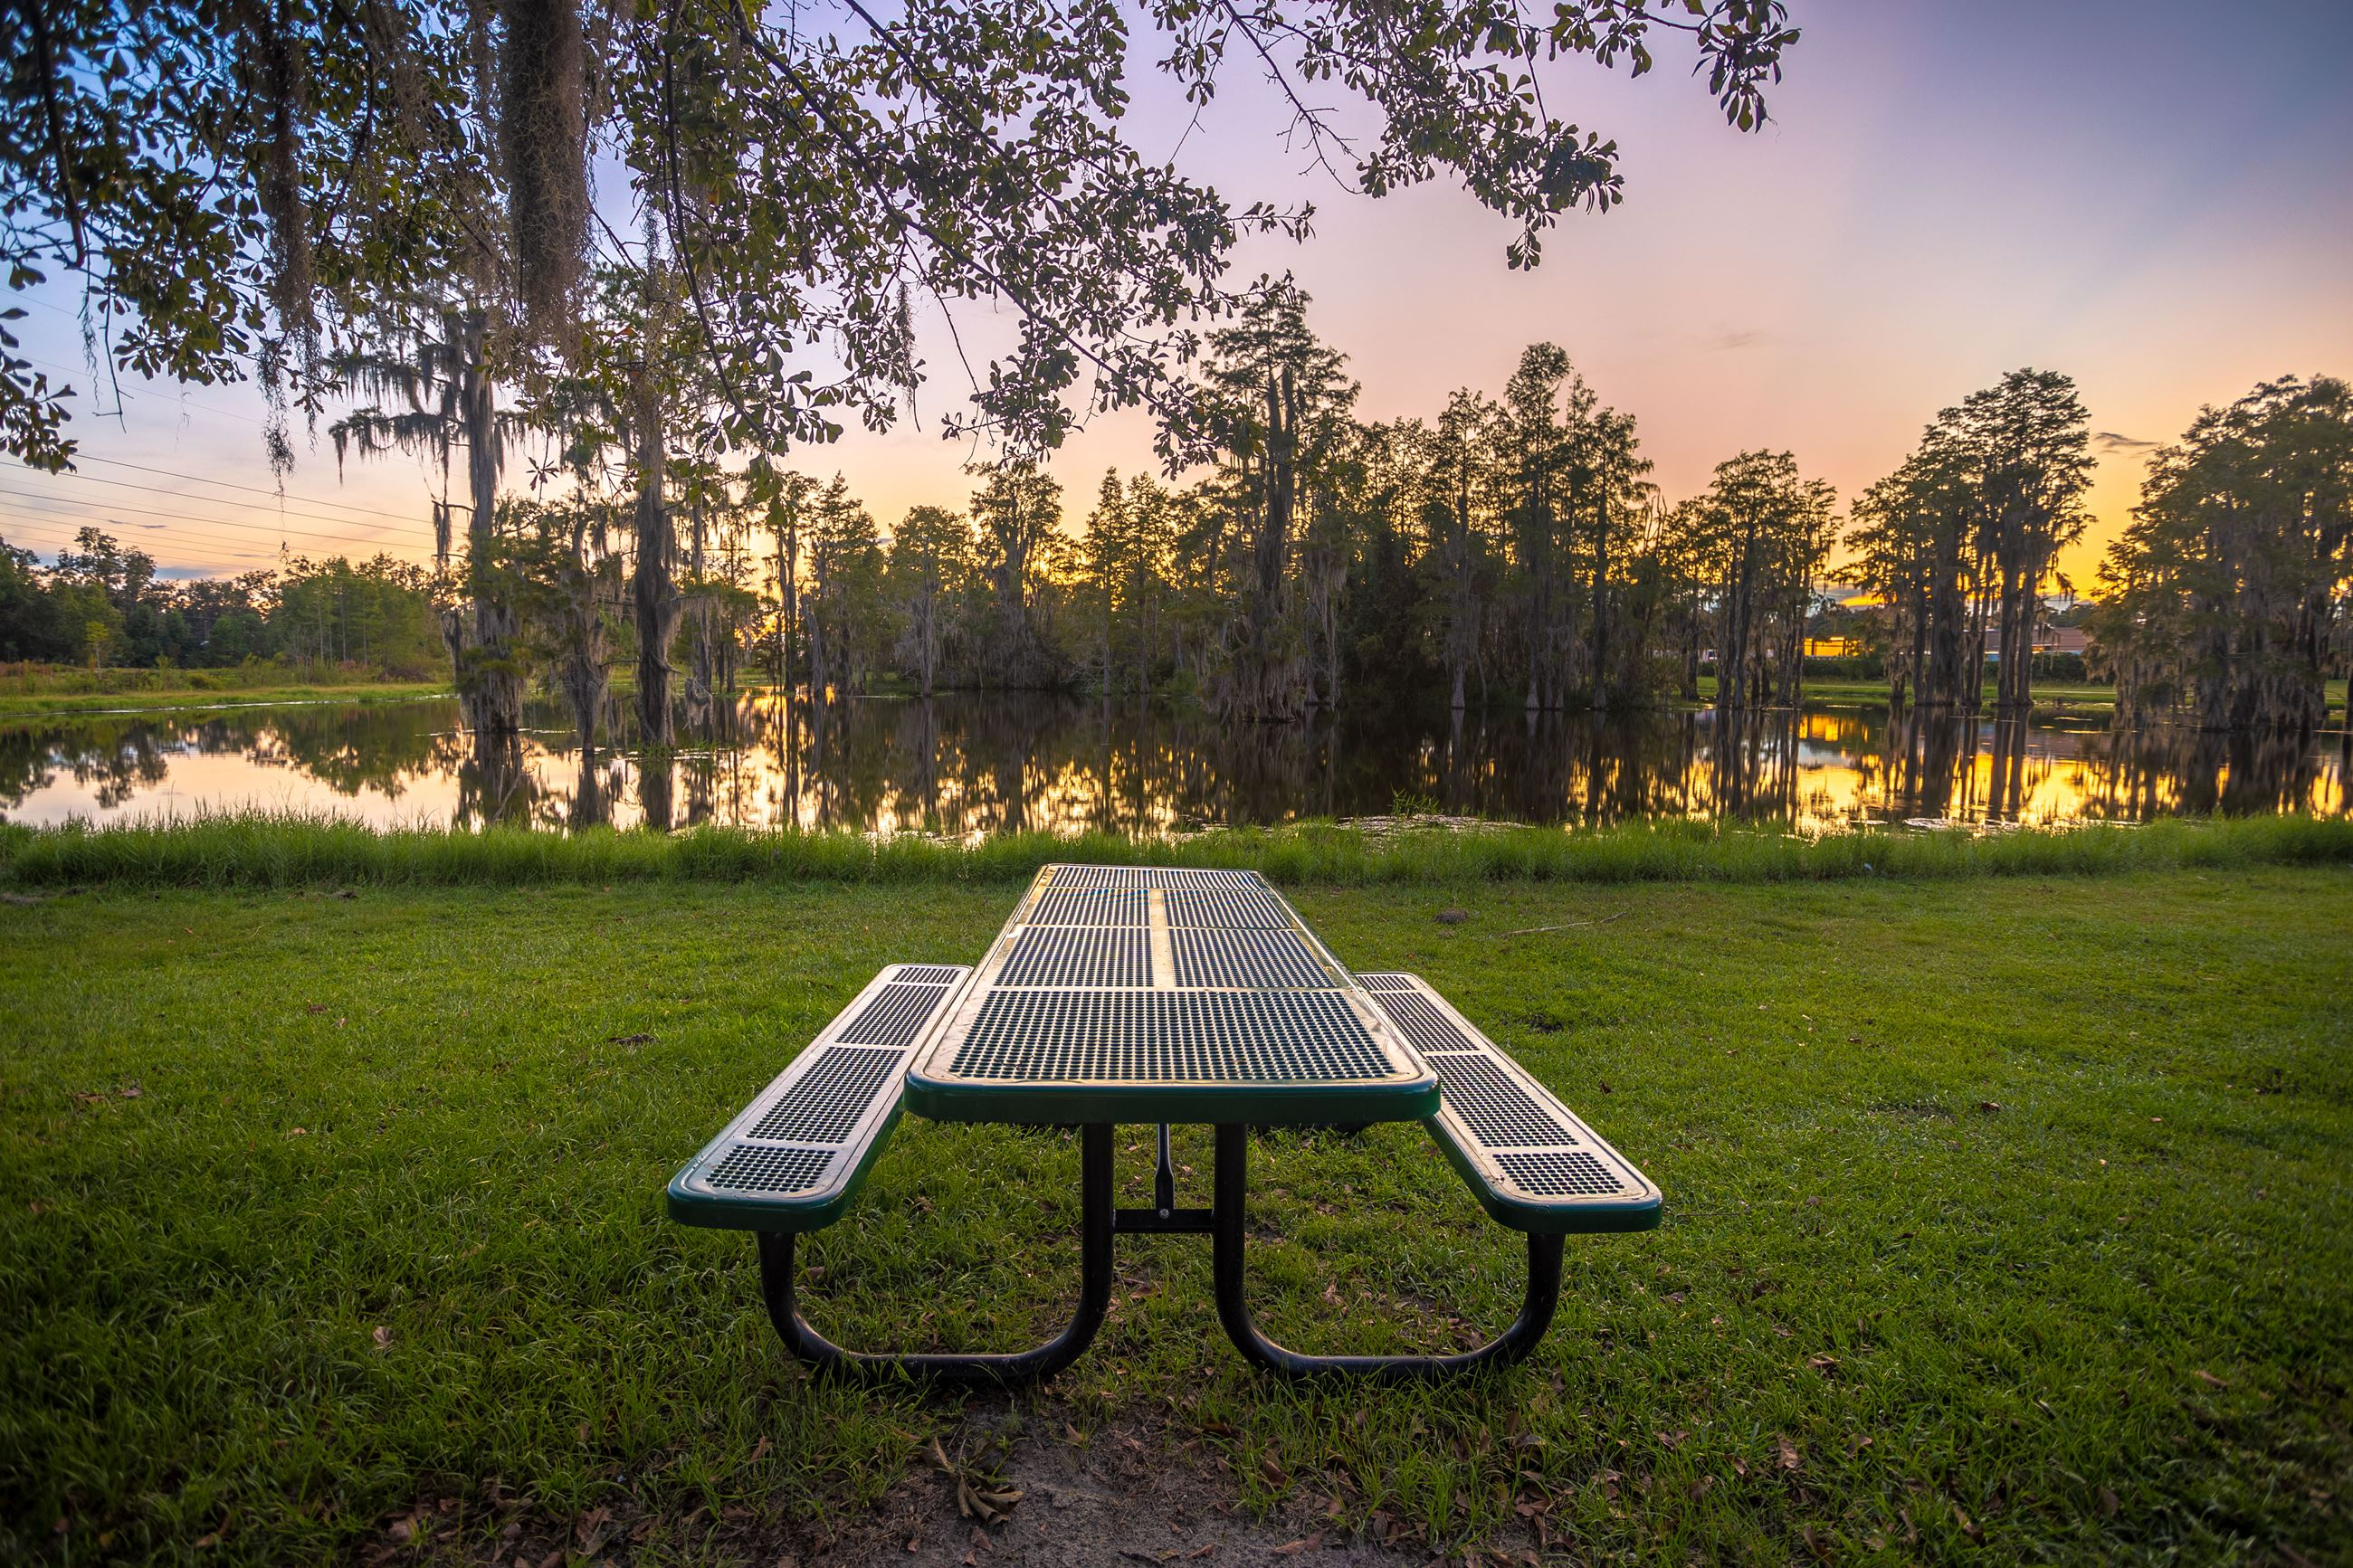 An image of a green picnic table in front of a cypress pond at sunset.